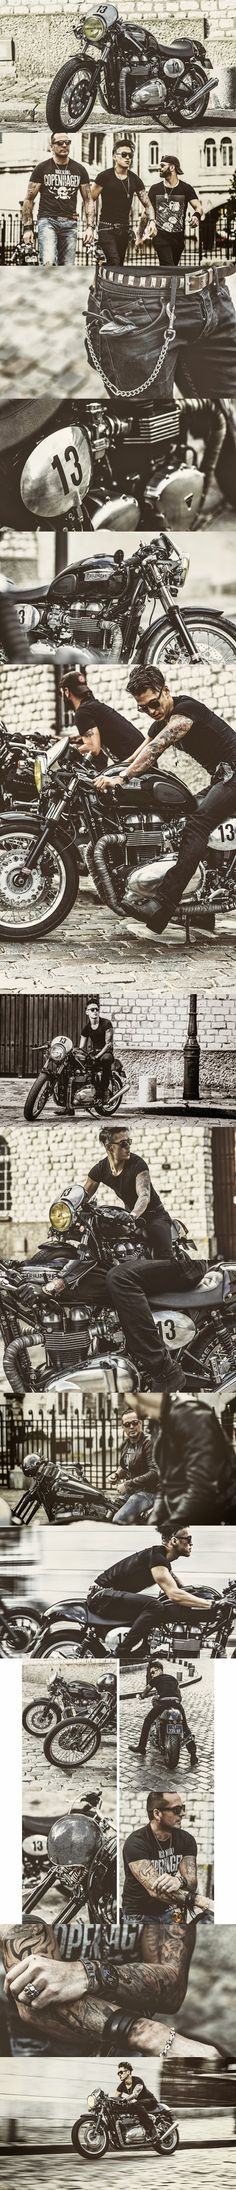 Triumph The Three Horsemen Men's Bike Series July 2014https://www.behance.net/gallery/The-Three-Horsemen/12195489 --- caferacer #motorcycles #motos | caferacerpasion.com